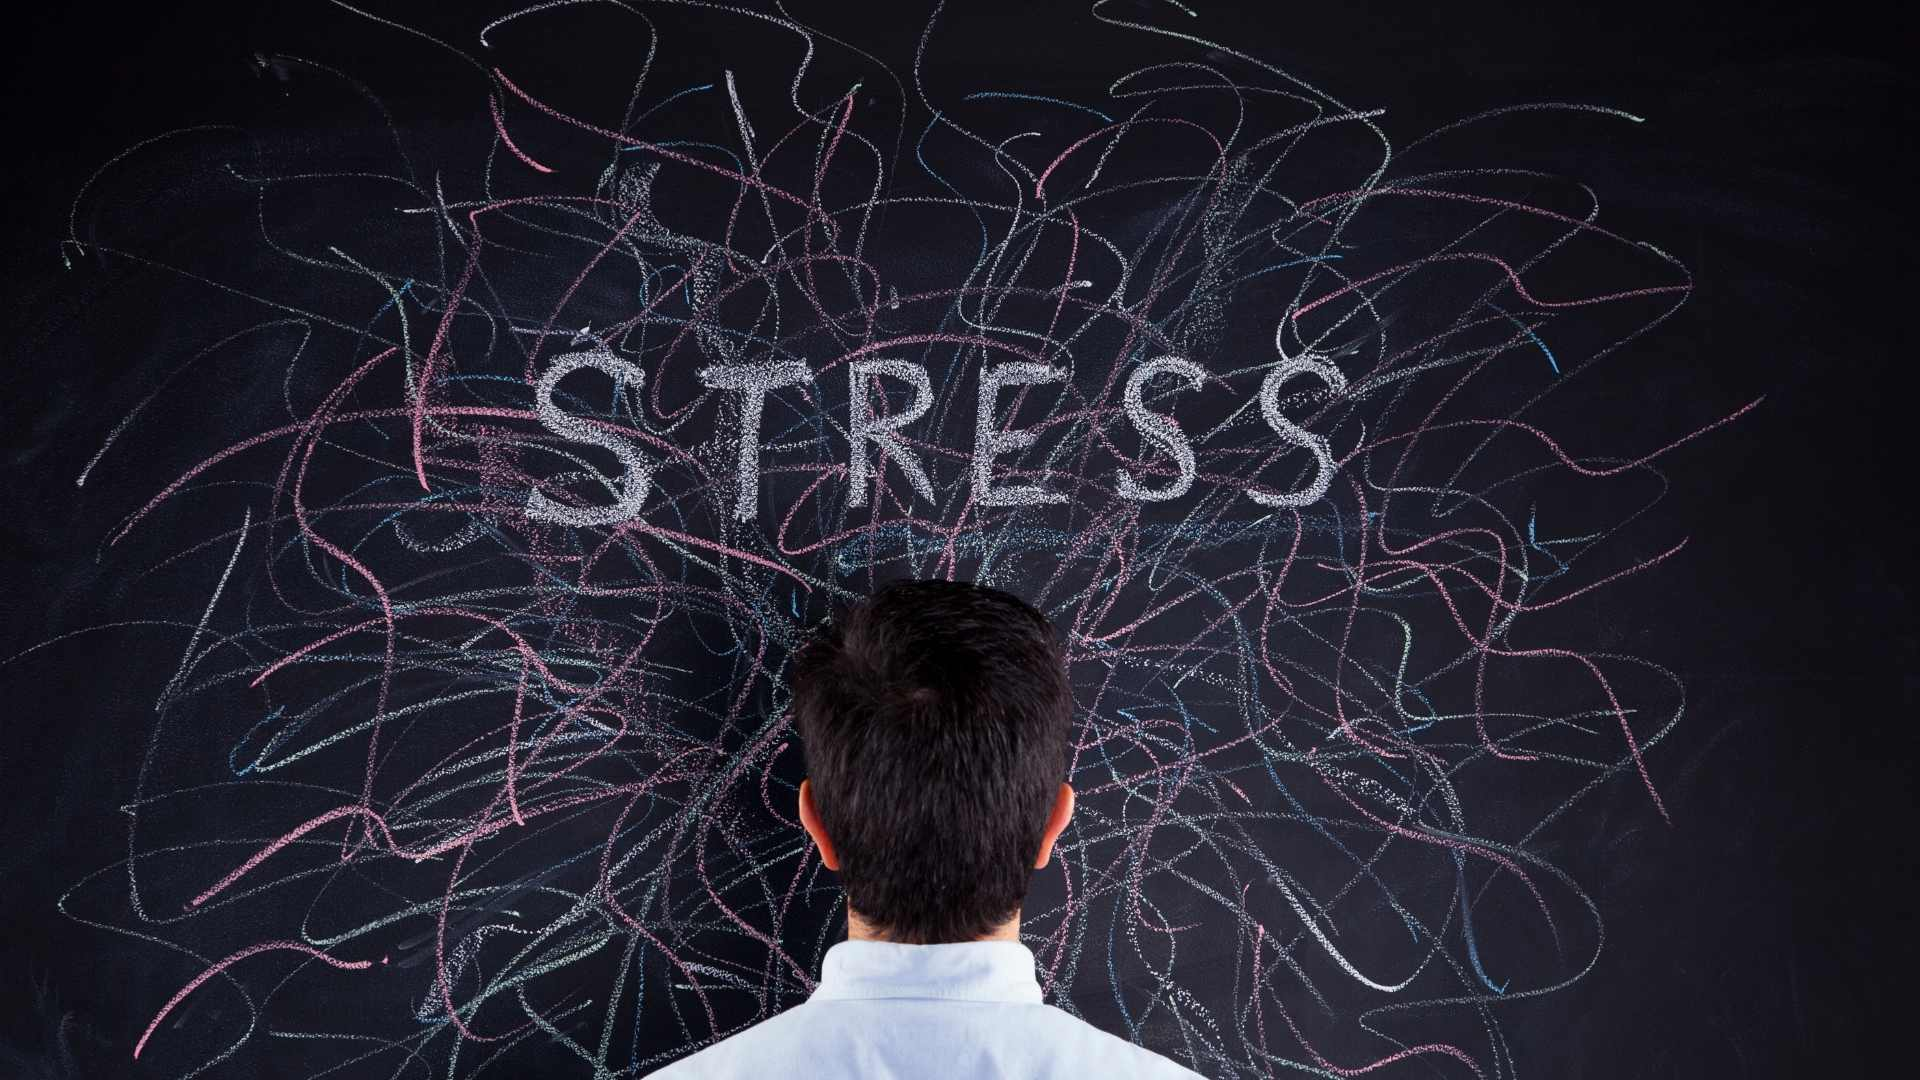 Healthy Approaches to Job Stress, Based On Your Zodiac Sign